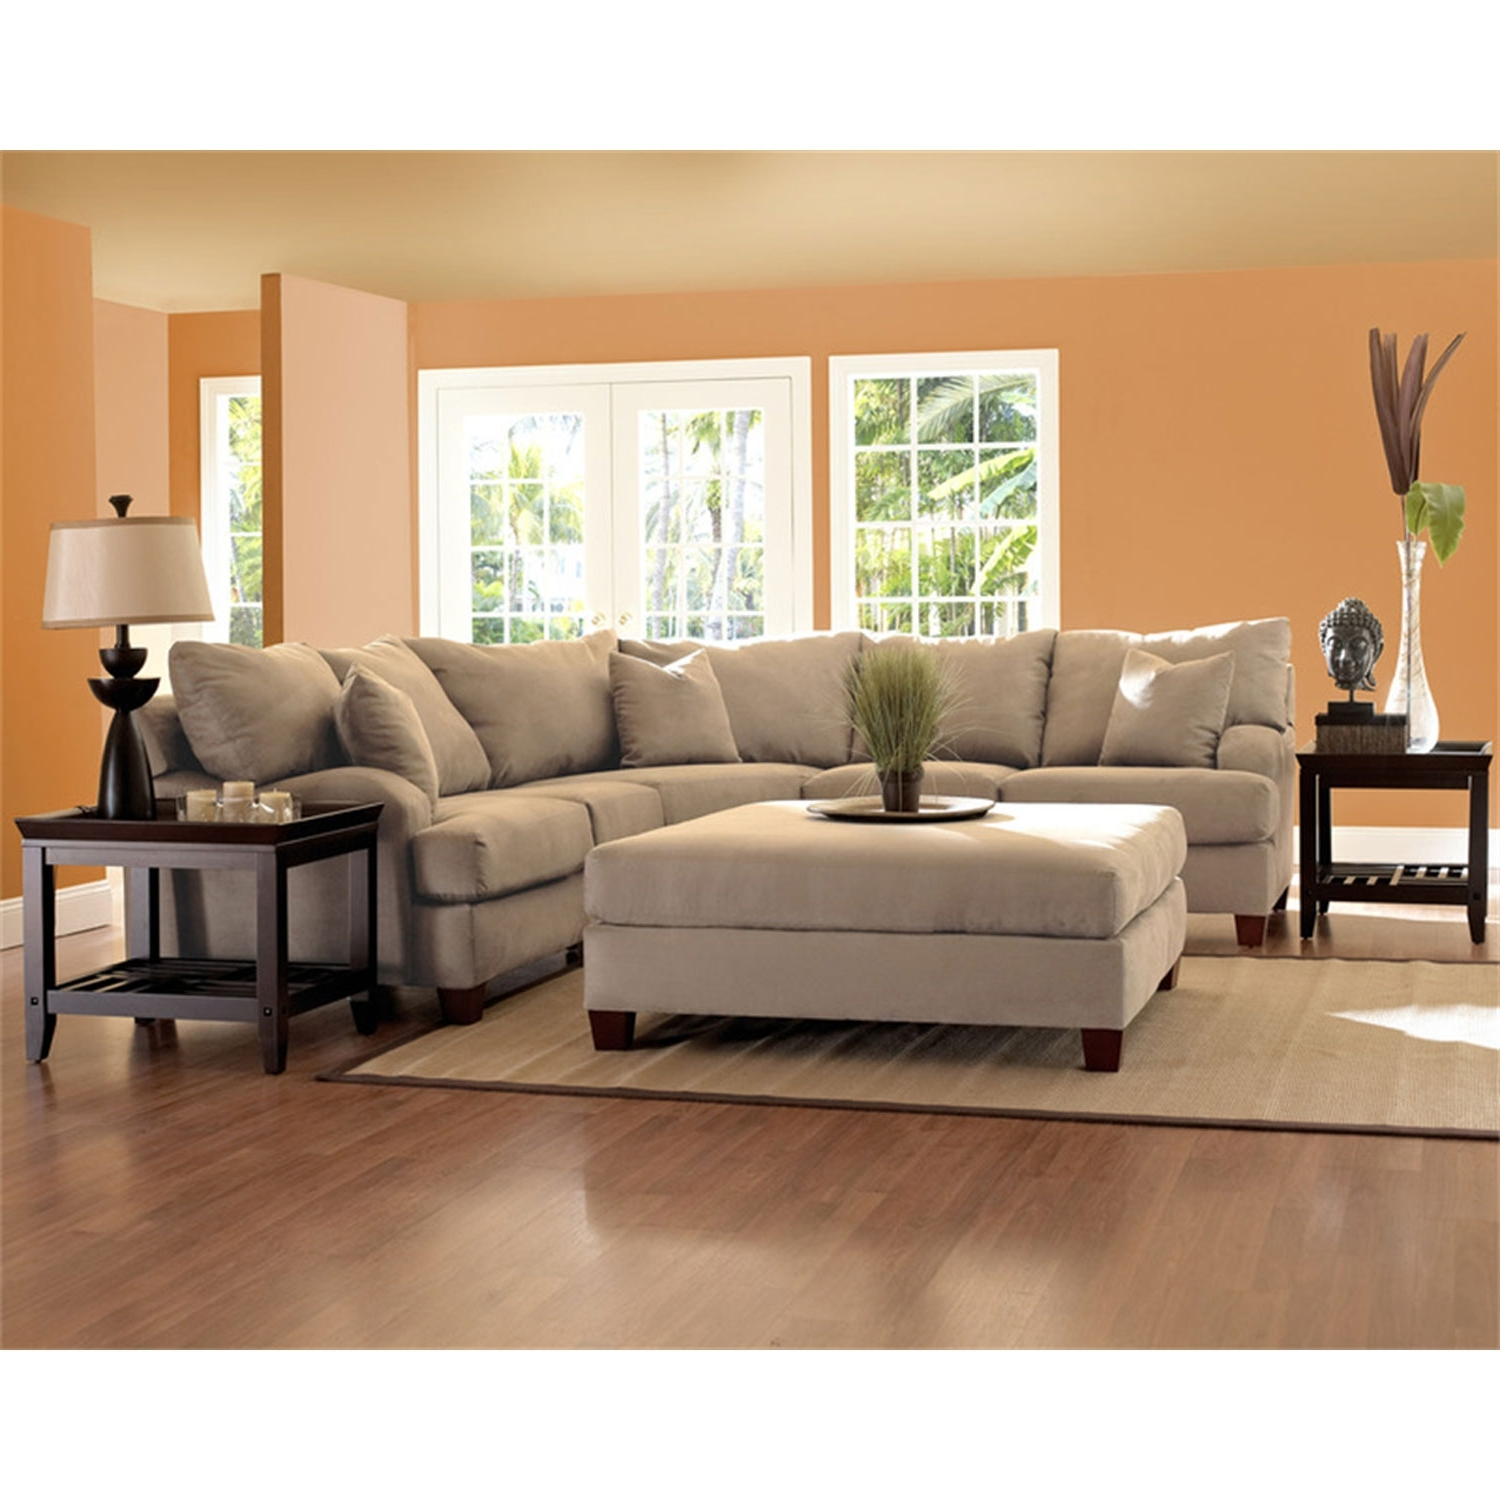 Preferred Beige Sectional Sofas With Canyon Beige Sectional Sectional Sofas Sofas & Sectionals Living (View 12 of 15)